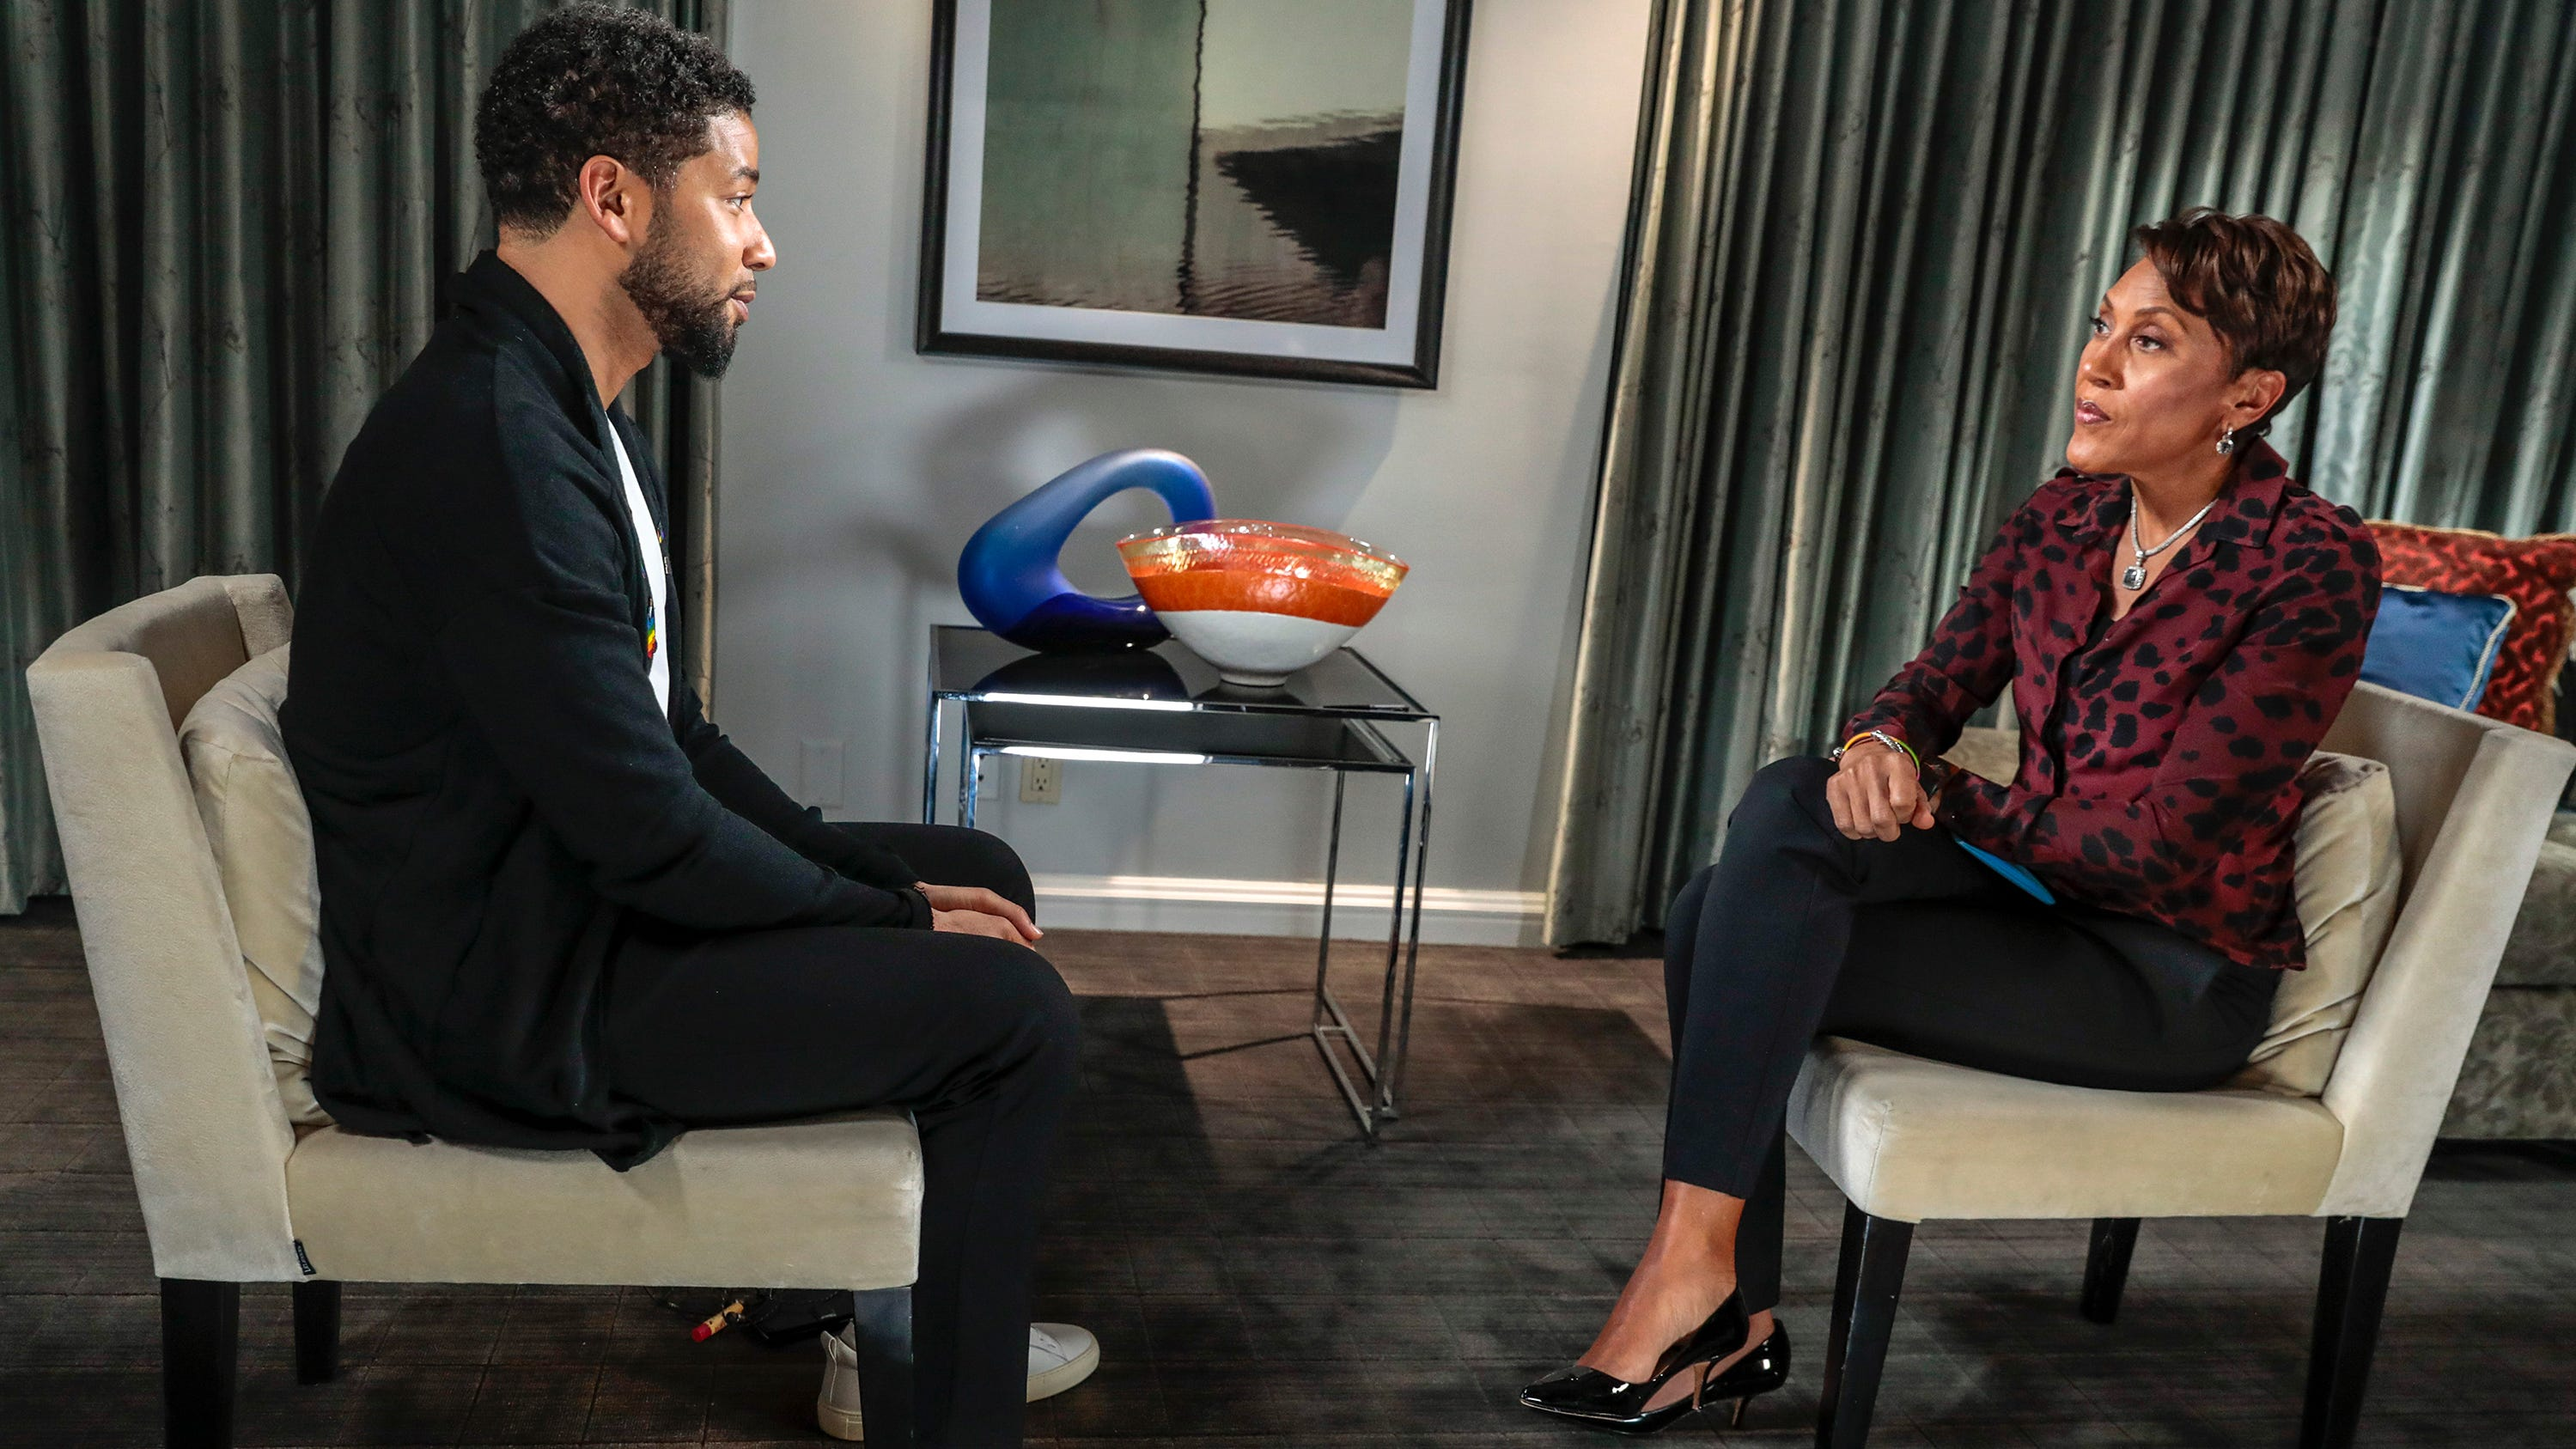 """On Feb. 22, less than 10 days after interviewing Smollett on """"Good Morning America,"""" Robin Roberts called his arrest a """"setback for race relations, homophobia, MAGA supporters – the fingers were pointed at them. I cannot think of another case where there's this anger on so many sides, and you can understand why there would be."""""""